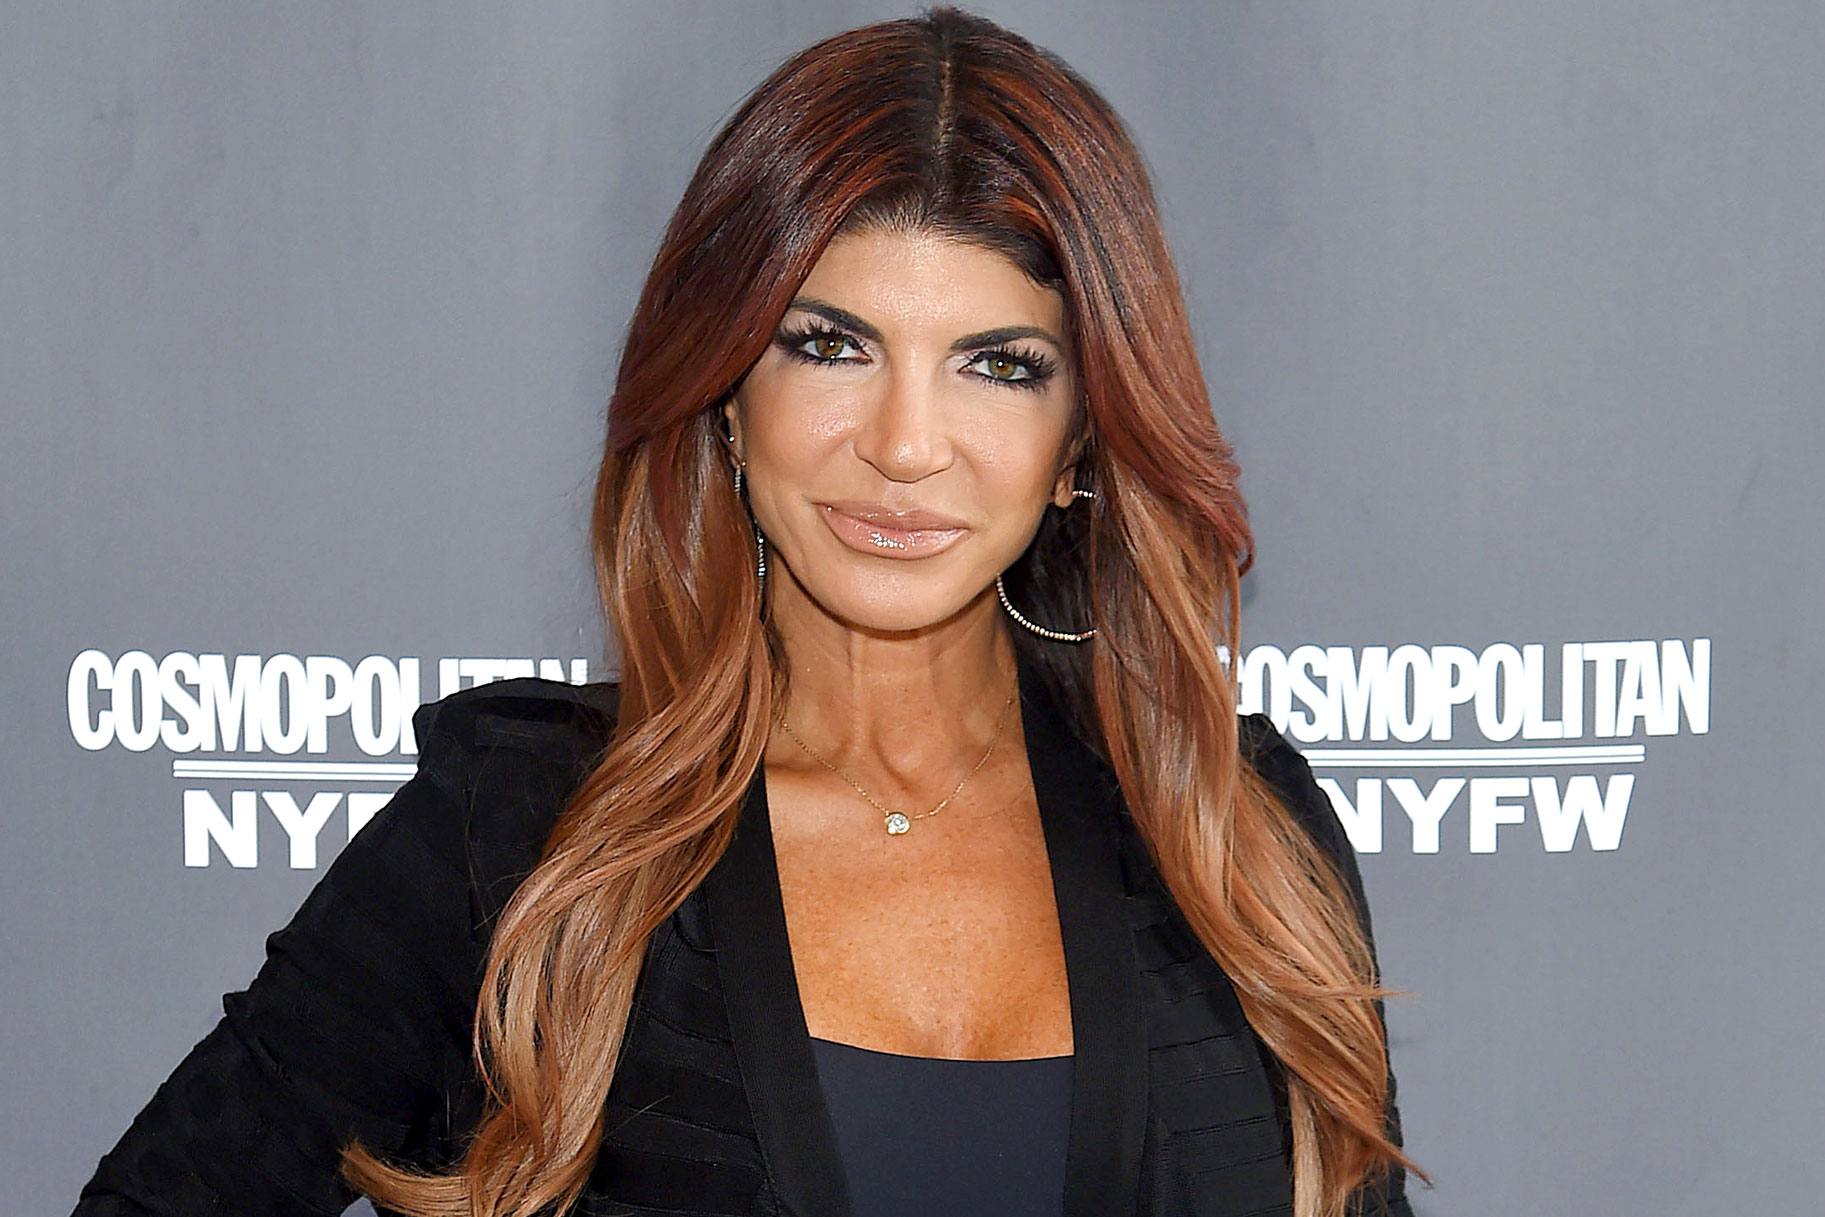 Teresa Giudice Update Joe Giudice Deportation News